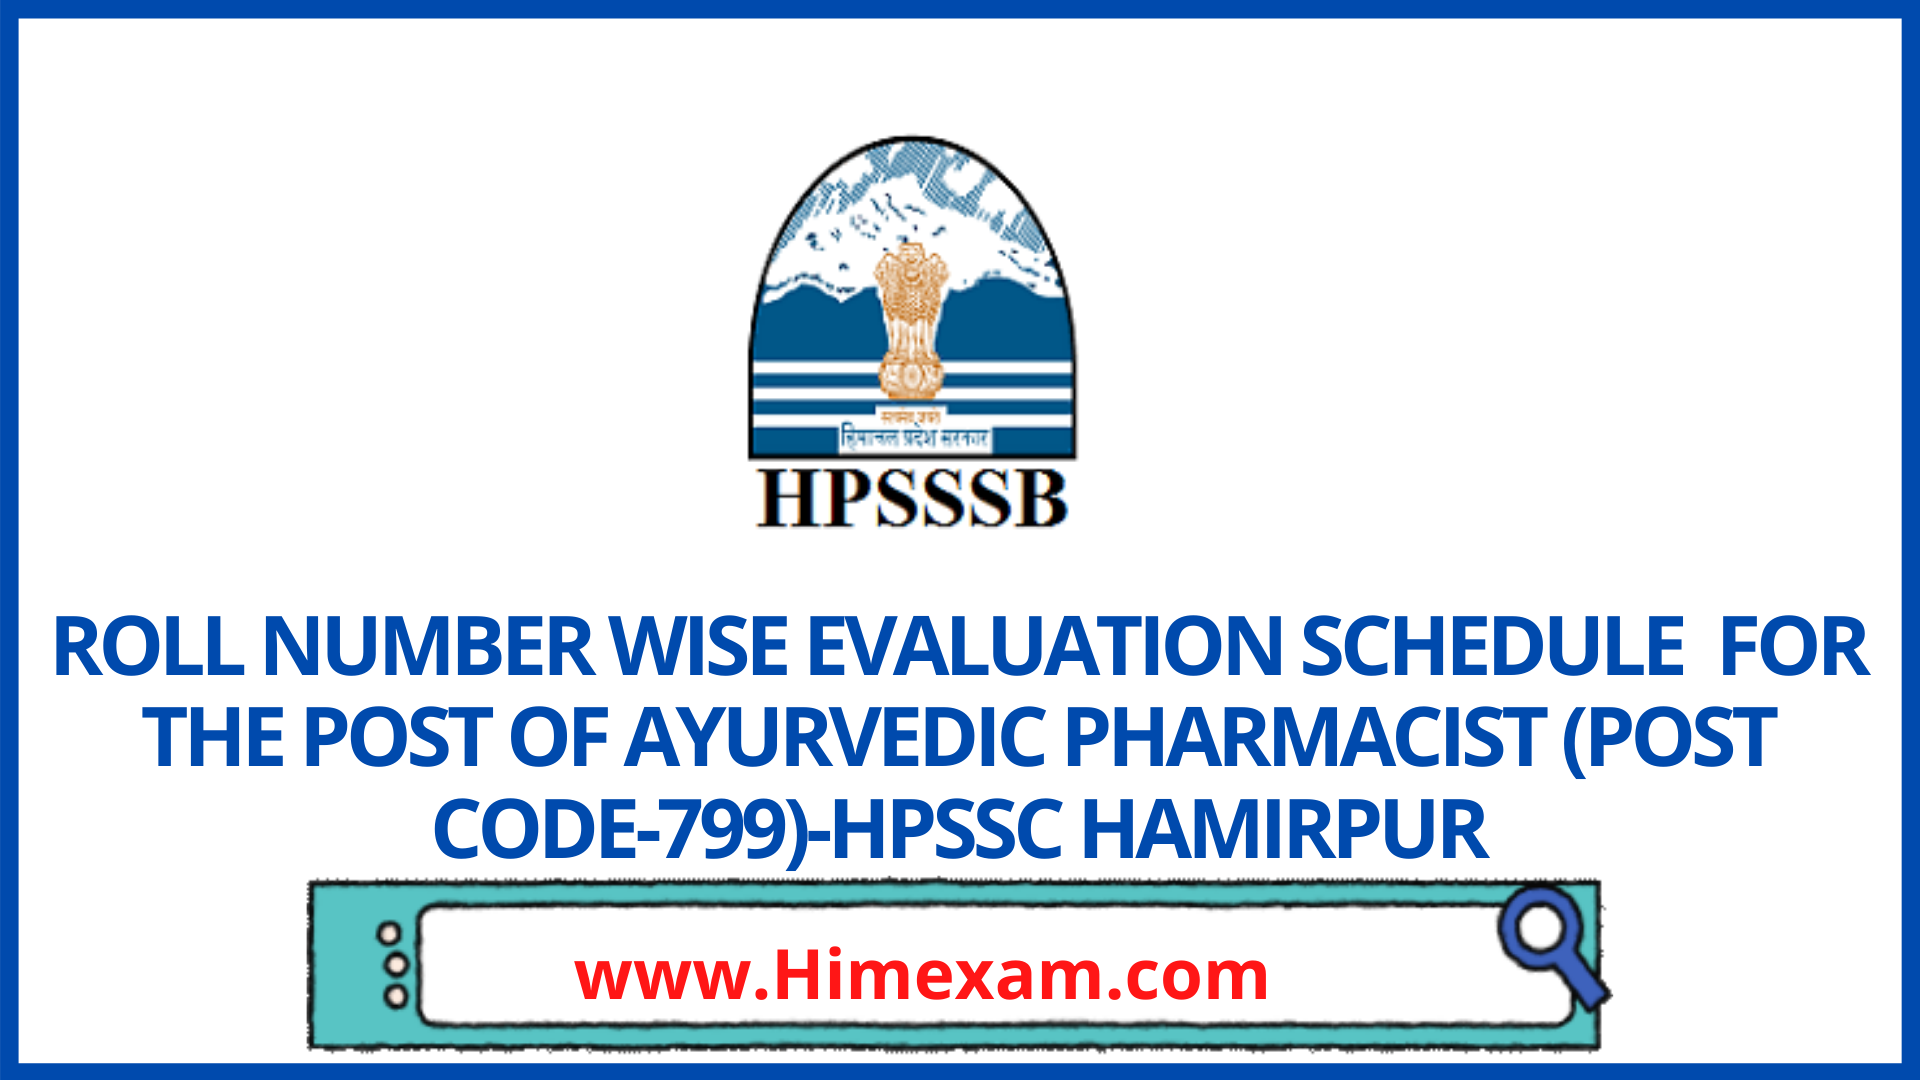 ROLL NUMBER WISE EVALUATION SCHEDULE  FOR THE POST OF AYURVEDIC PHARMACIST (POST CODE-799)-HPSSC HAMIRPUR